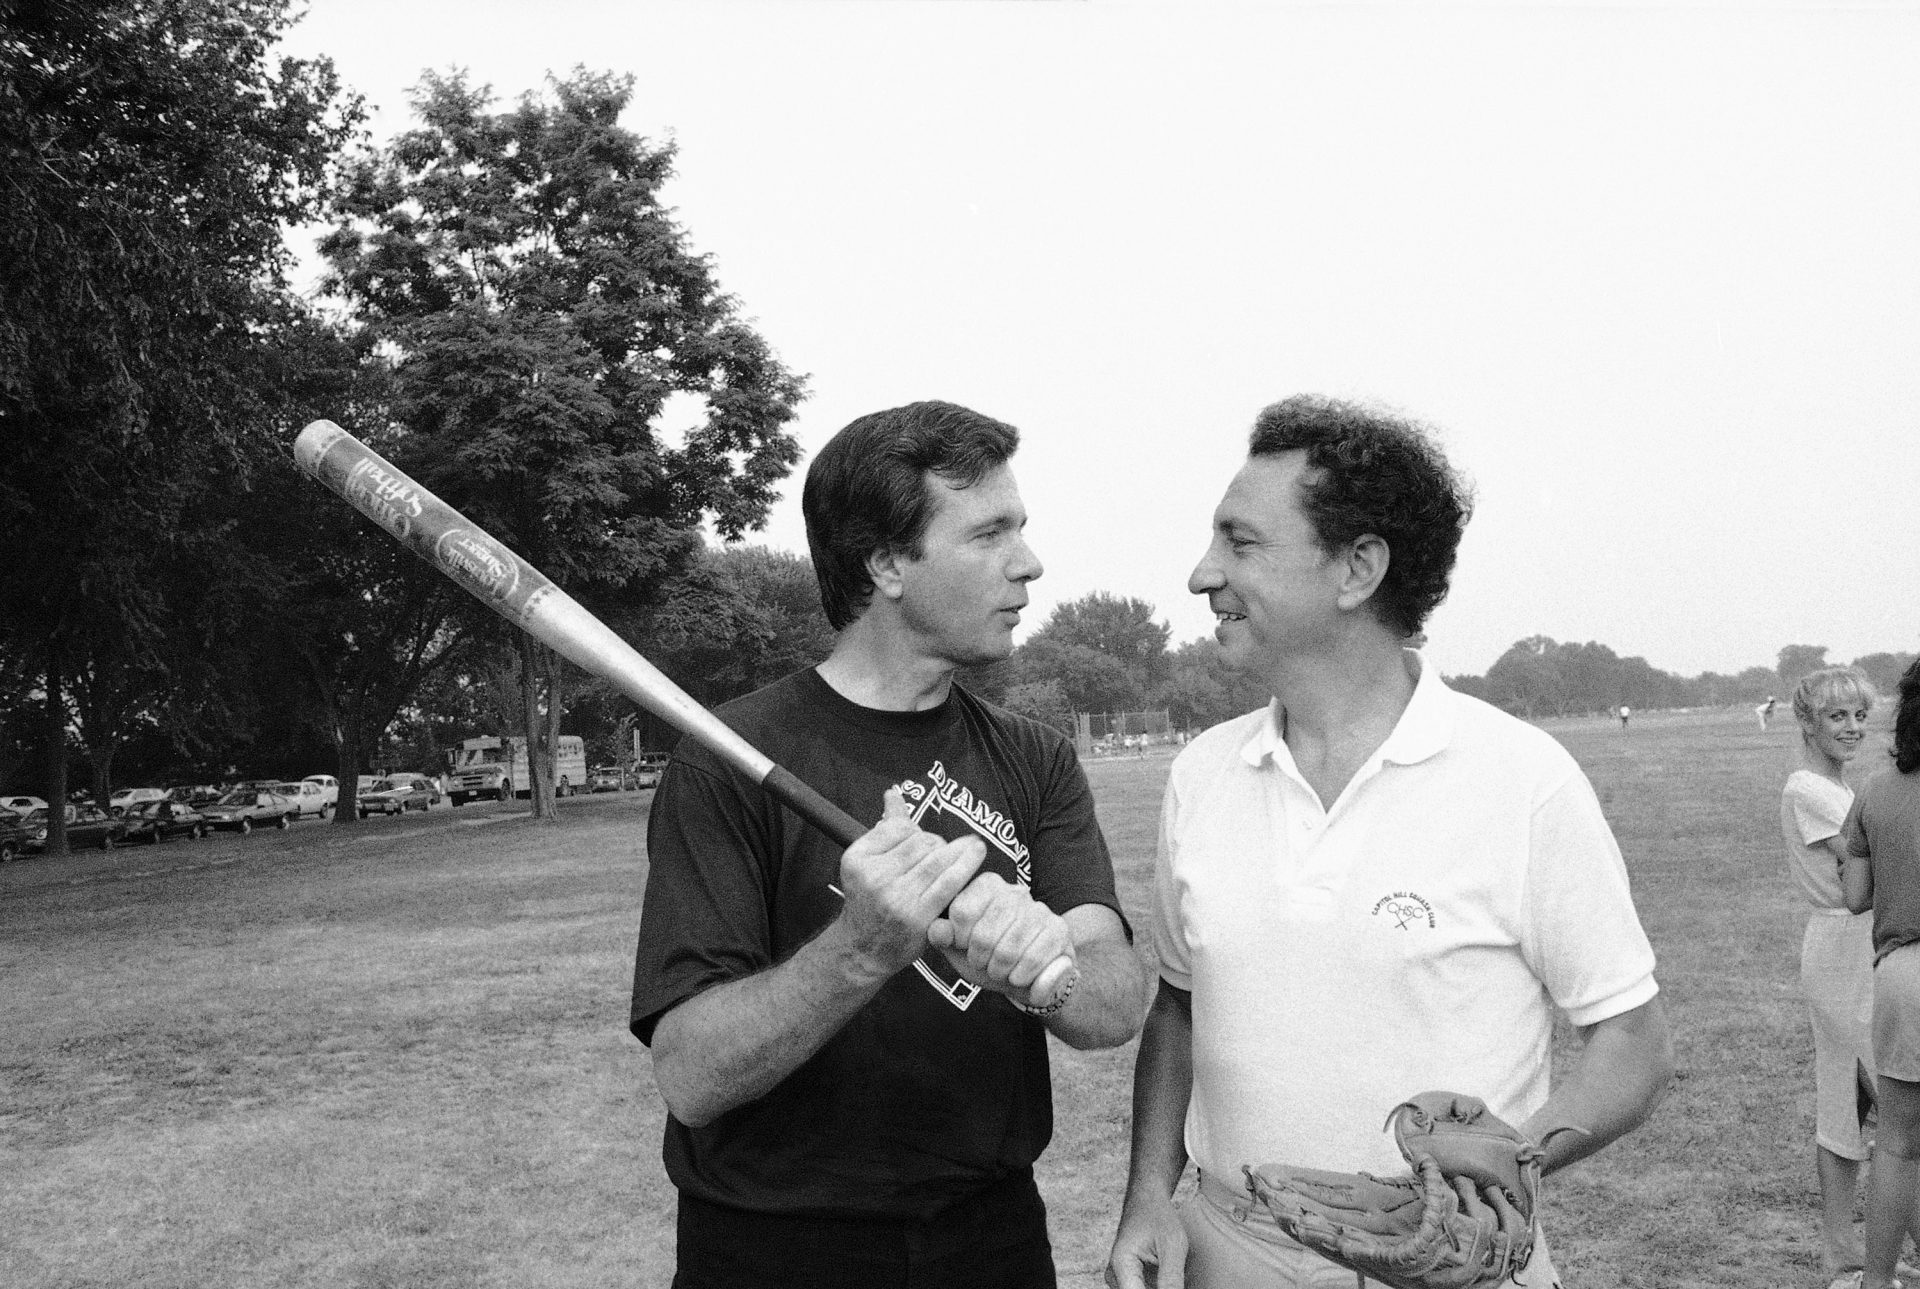 Sens. John Heinz, left, and Arlen Specter, grapple for first batting privileges, just before their two offices started a softball competition in Washington Tuesday, July 20, 1983. The two Pennsylvania Republicans captained their respective teams.